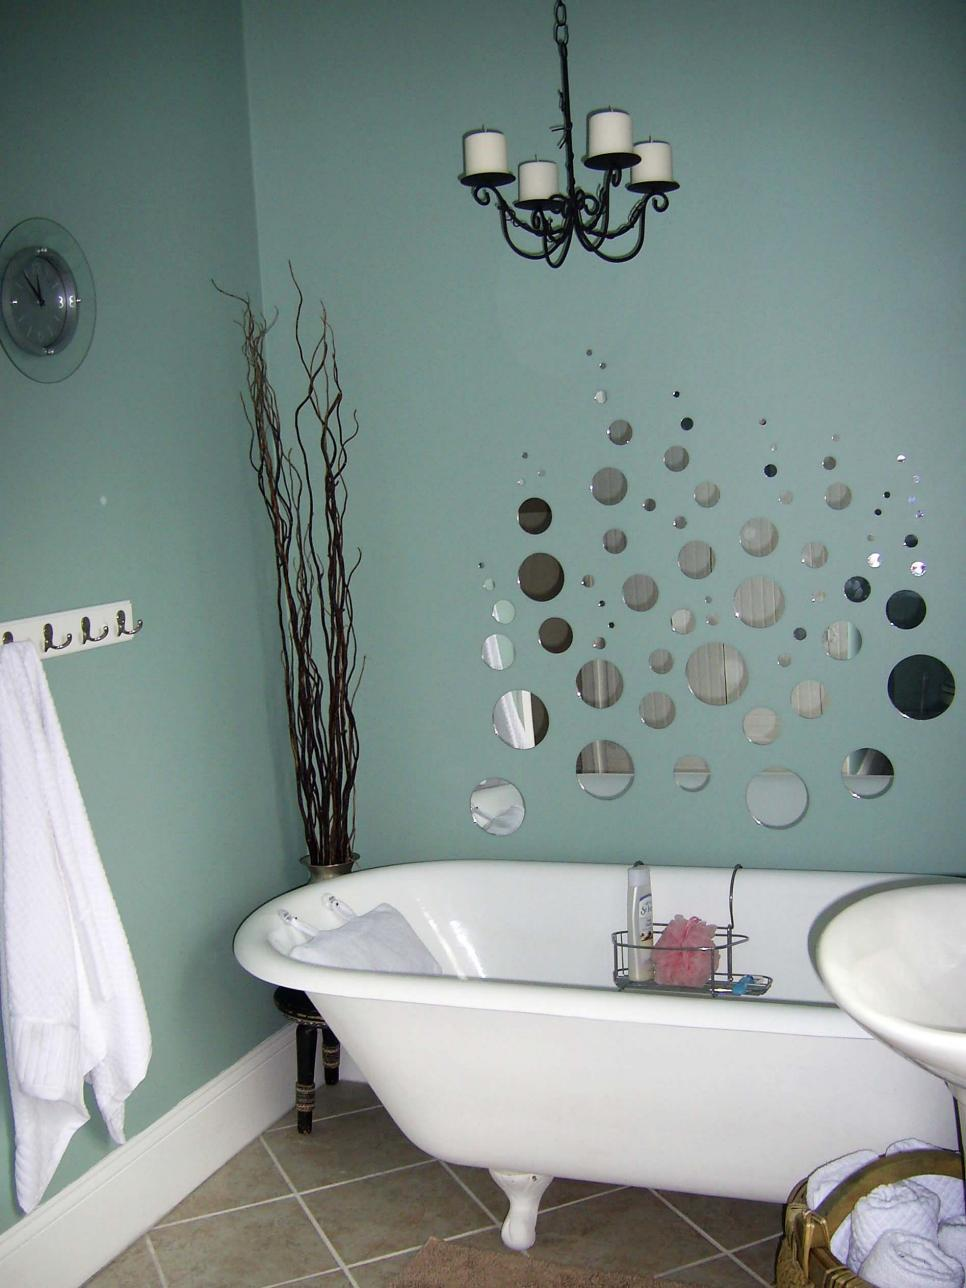 Bathrooms on a budget our 10 favorites from rate my space for Design my bathroom